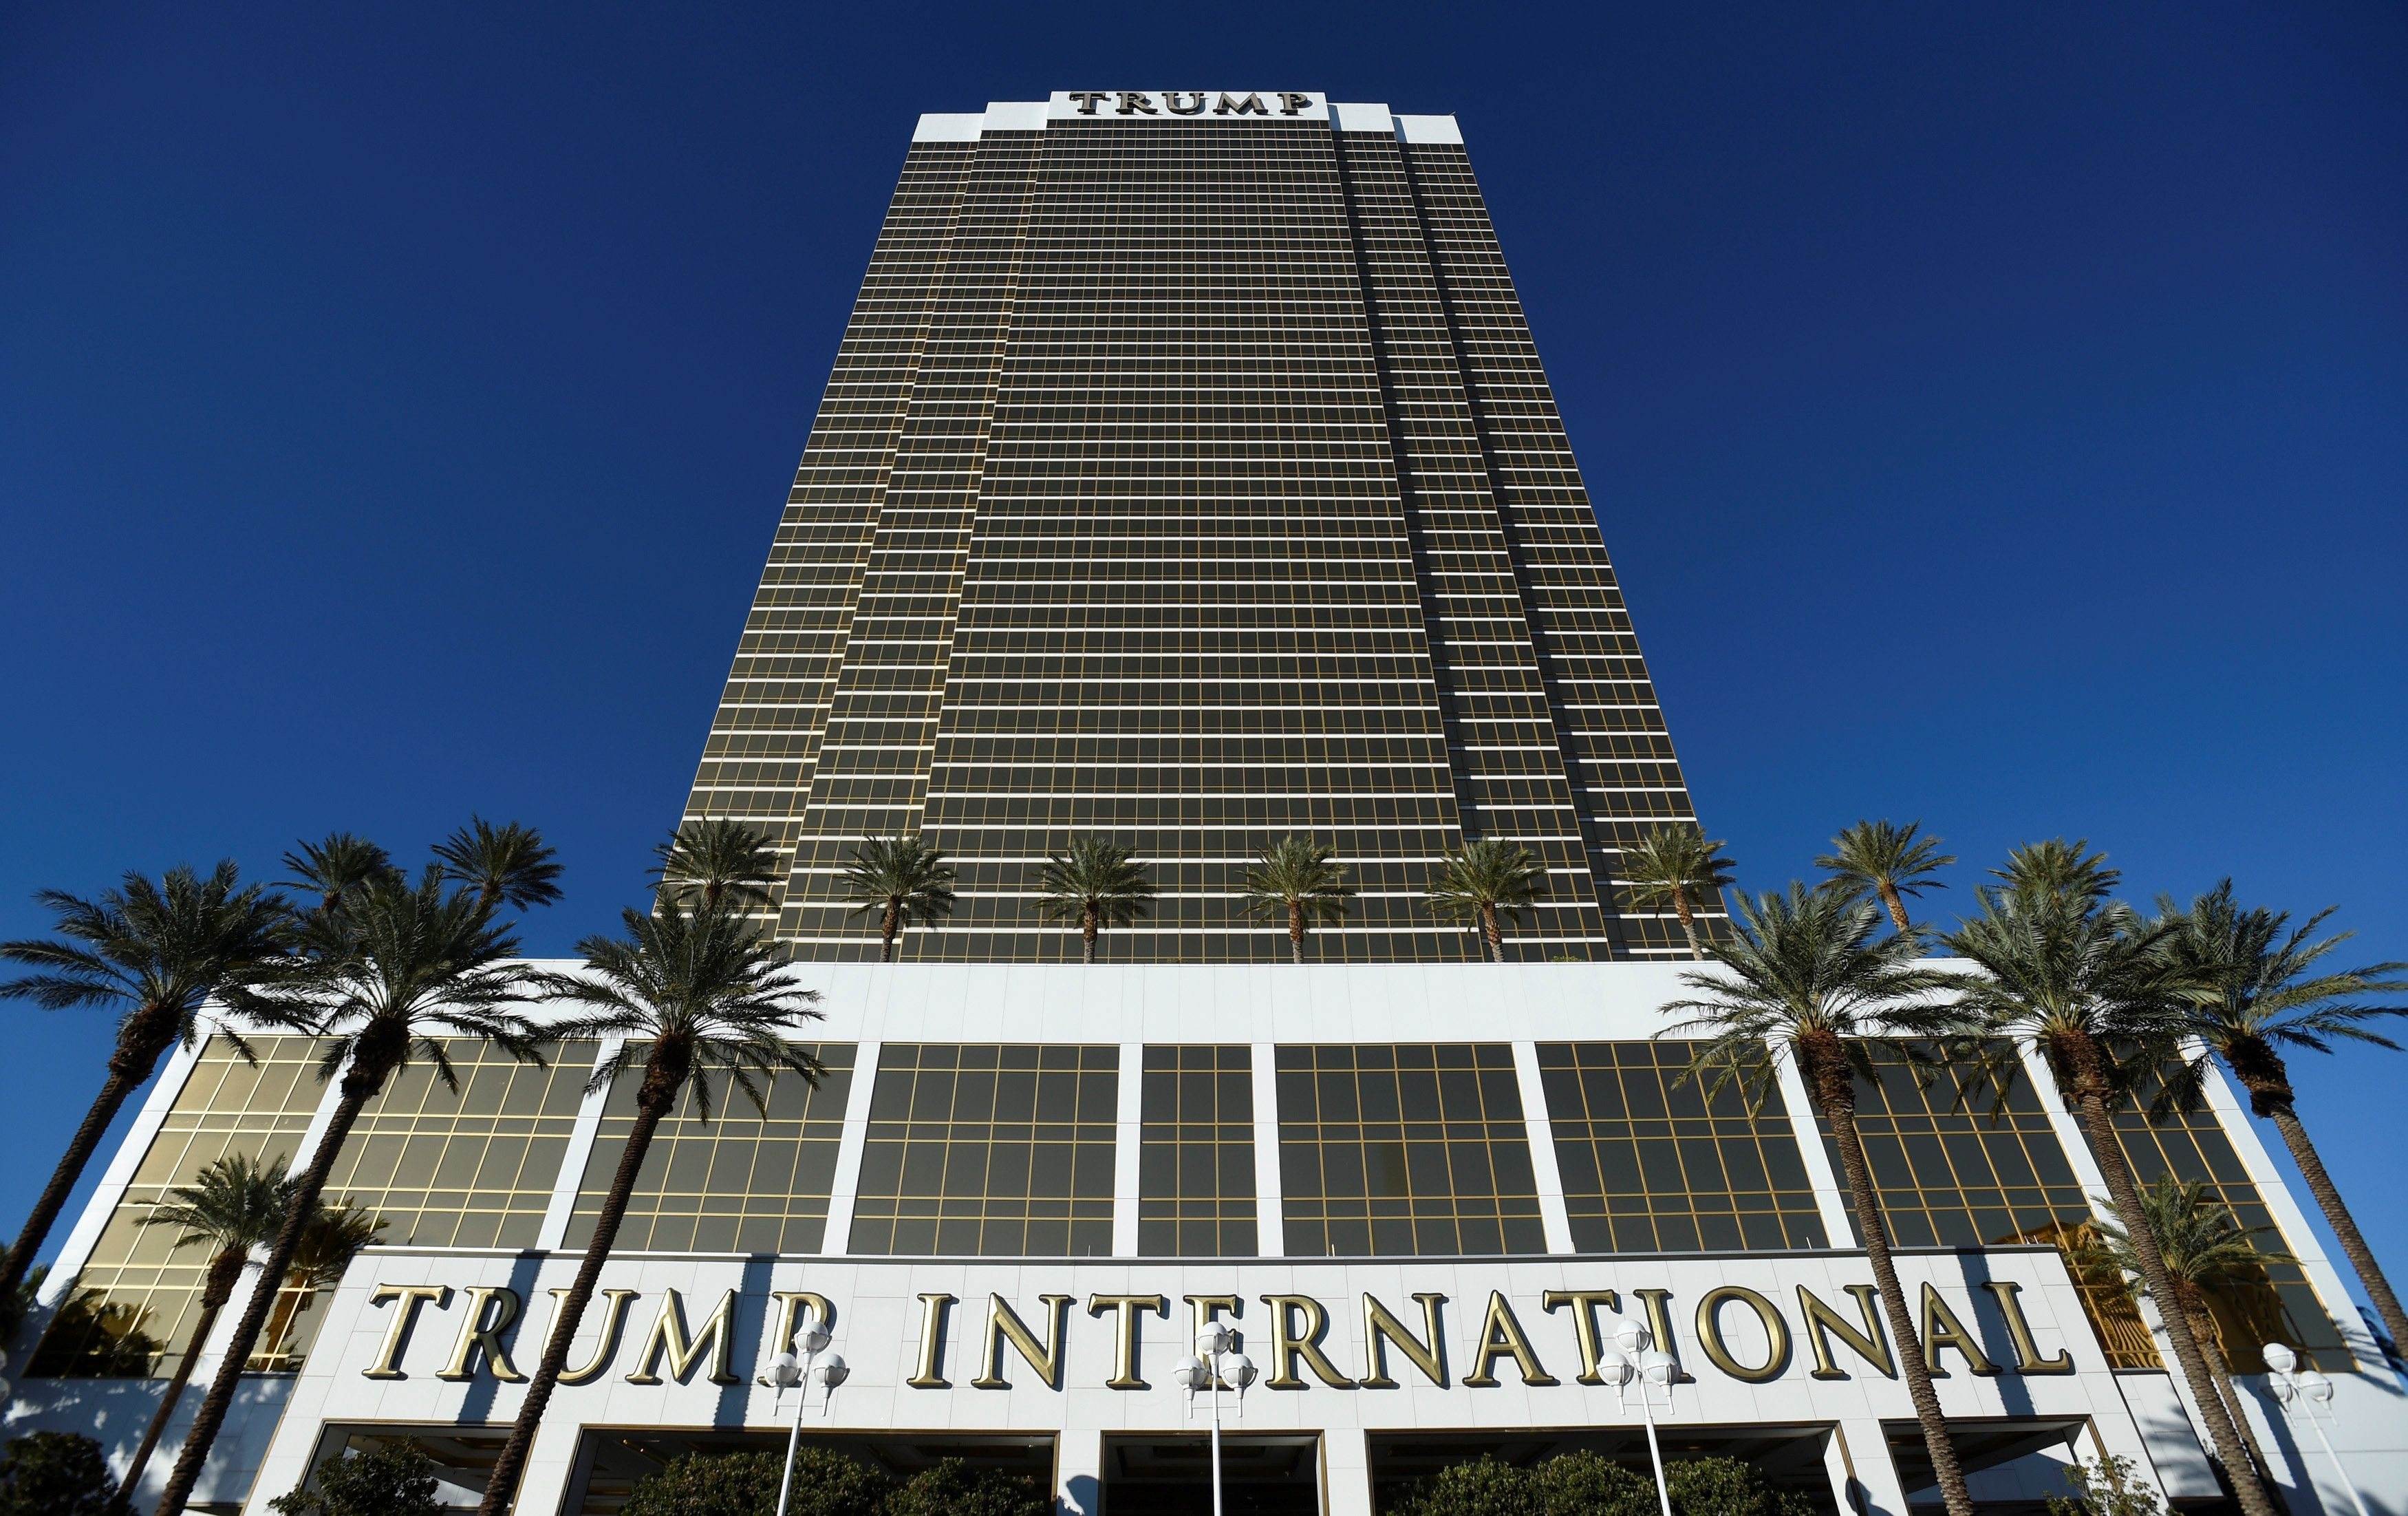 The Trump International Hotel & Tower owned by President-elect Donald Trump is seen in Las Vegas, Nevada, U.S. November 9